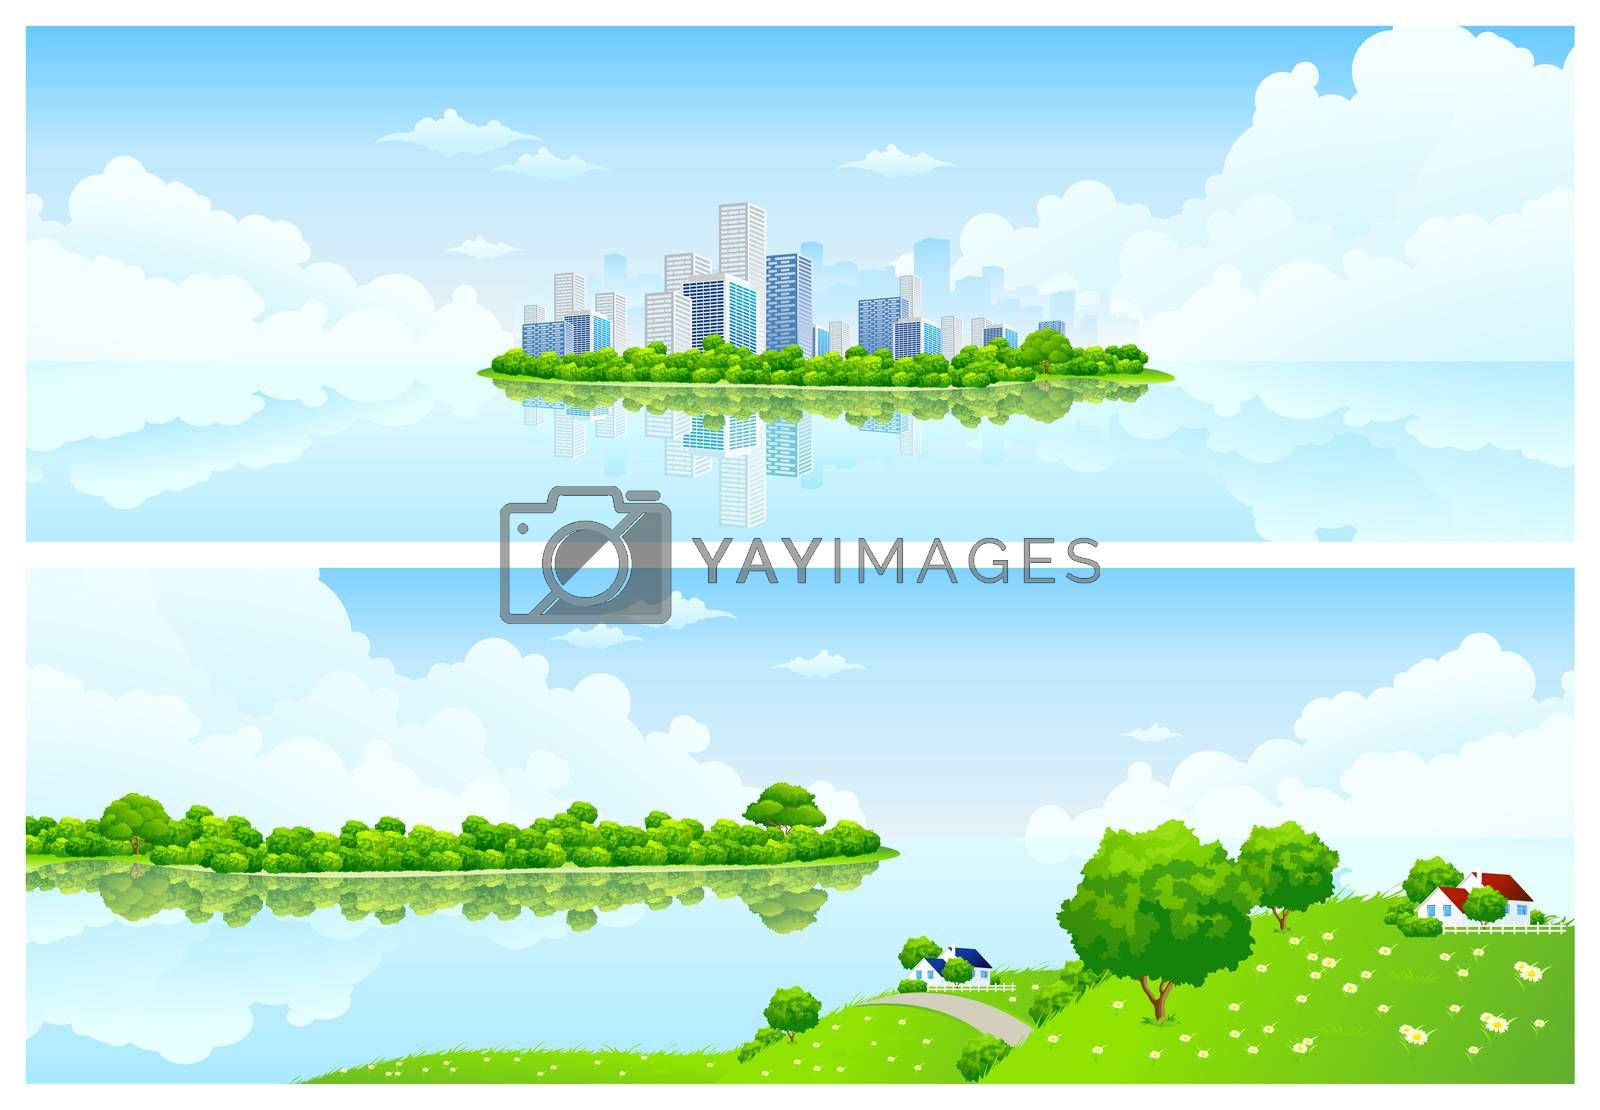 Nature banners by WaD